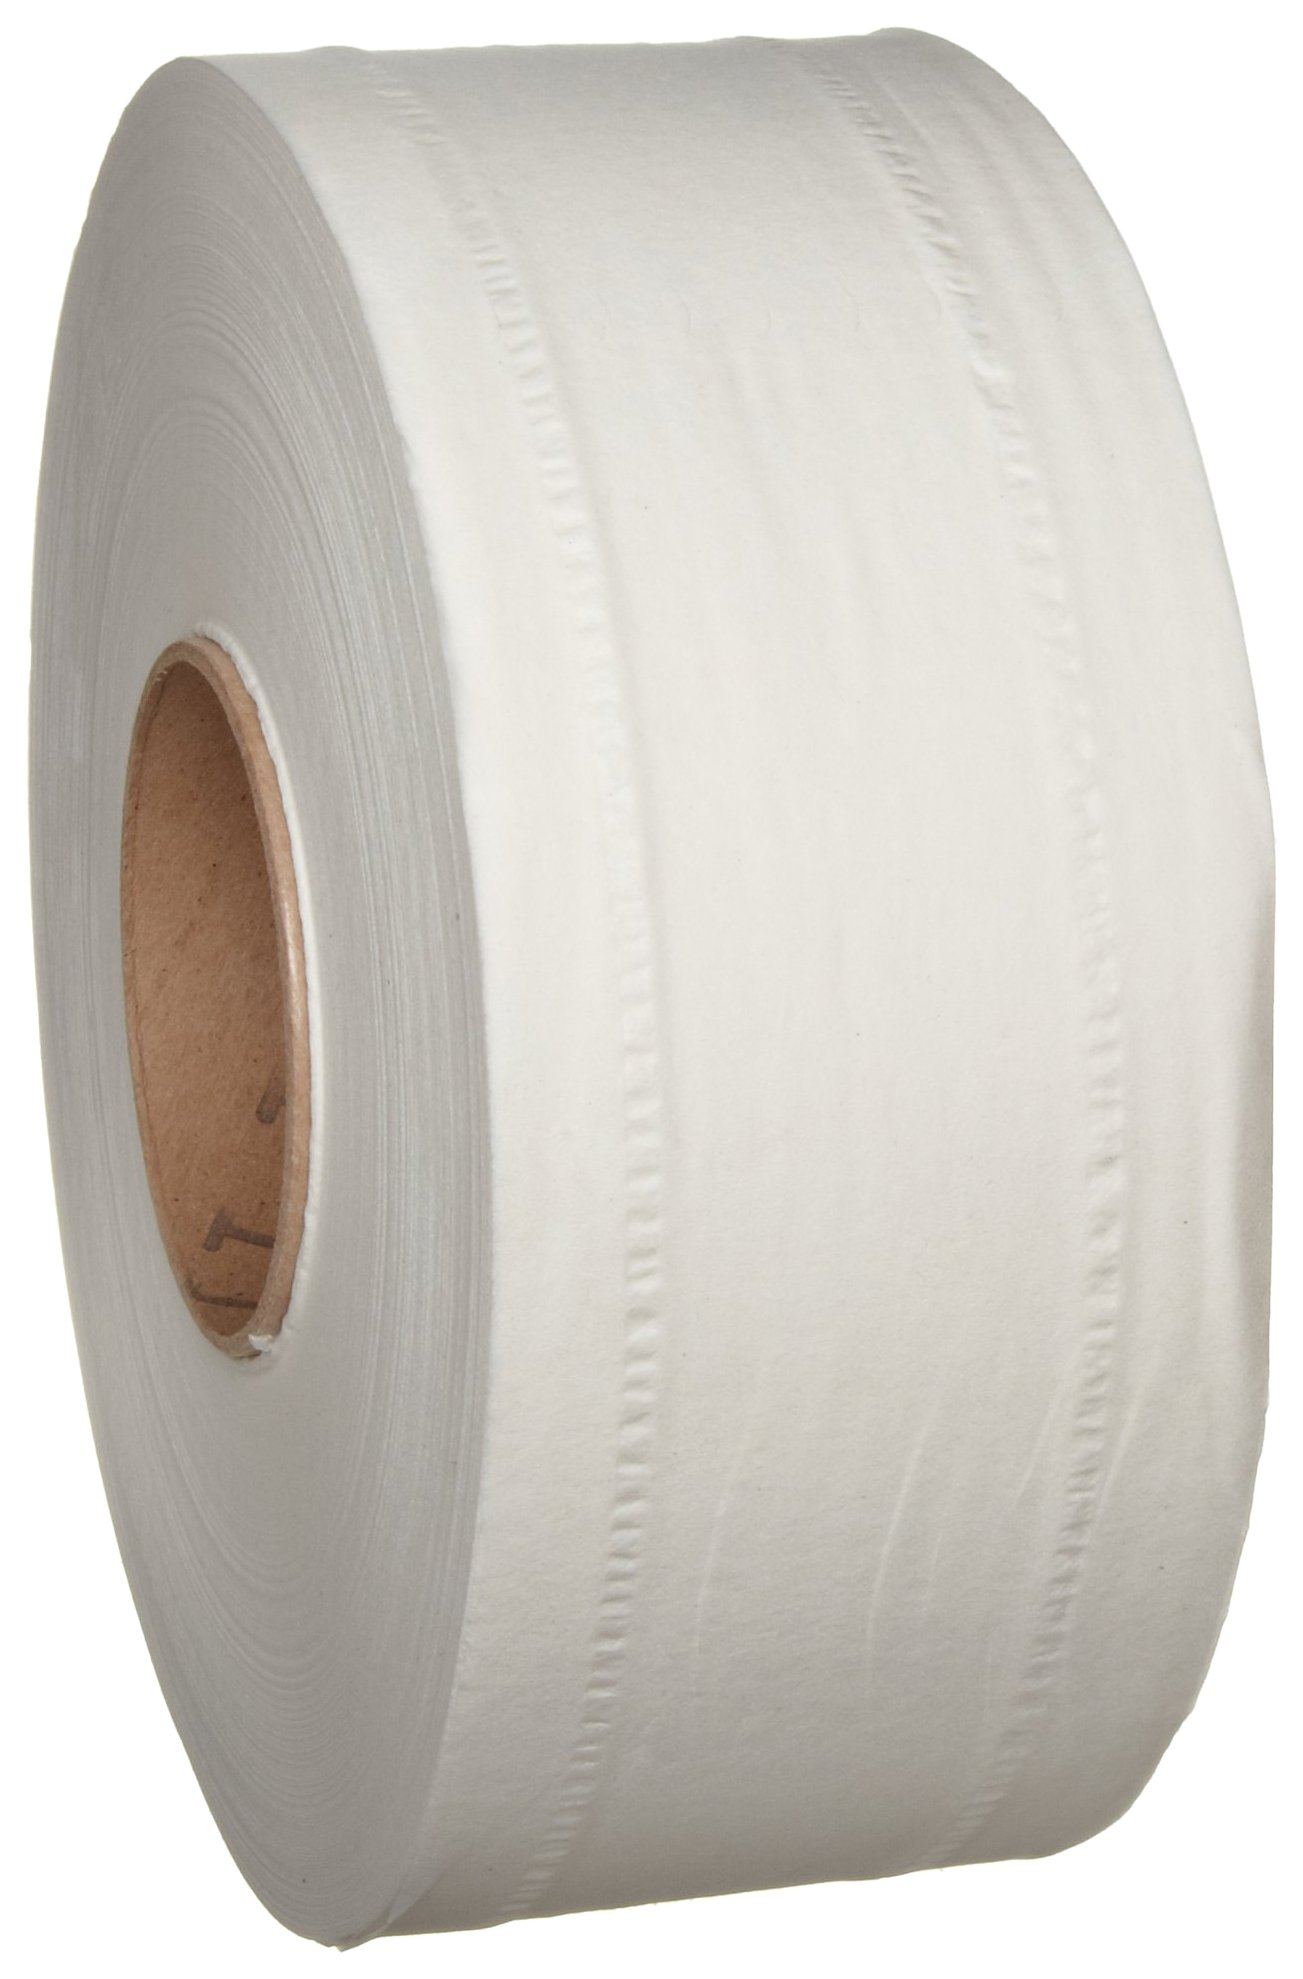 Scott 07304 Essential Extra Soft JRT, 2-Ply, 7.9'' dia, 750 ft (Case of 12) by Scott (Image #2)